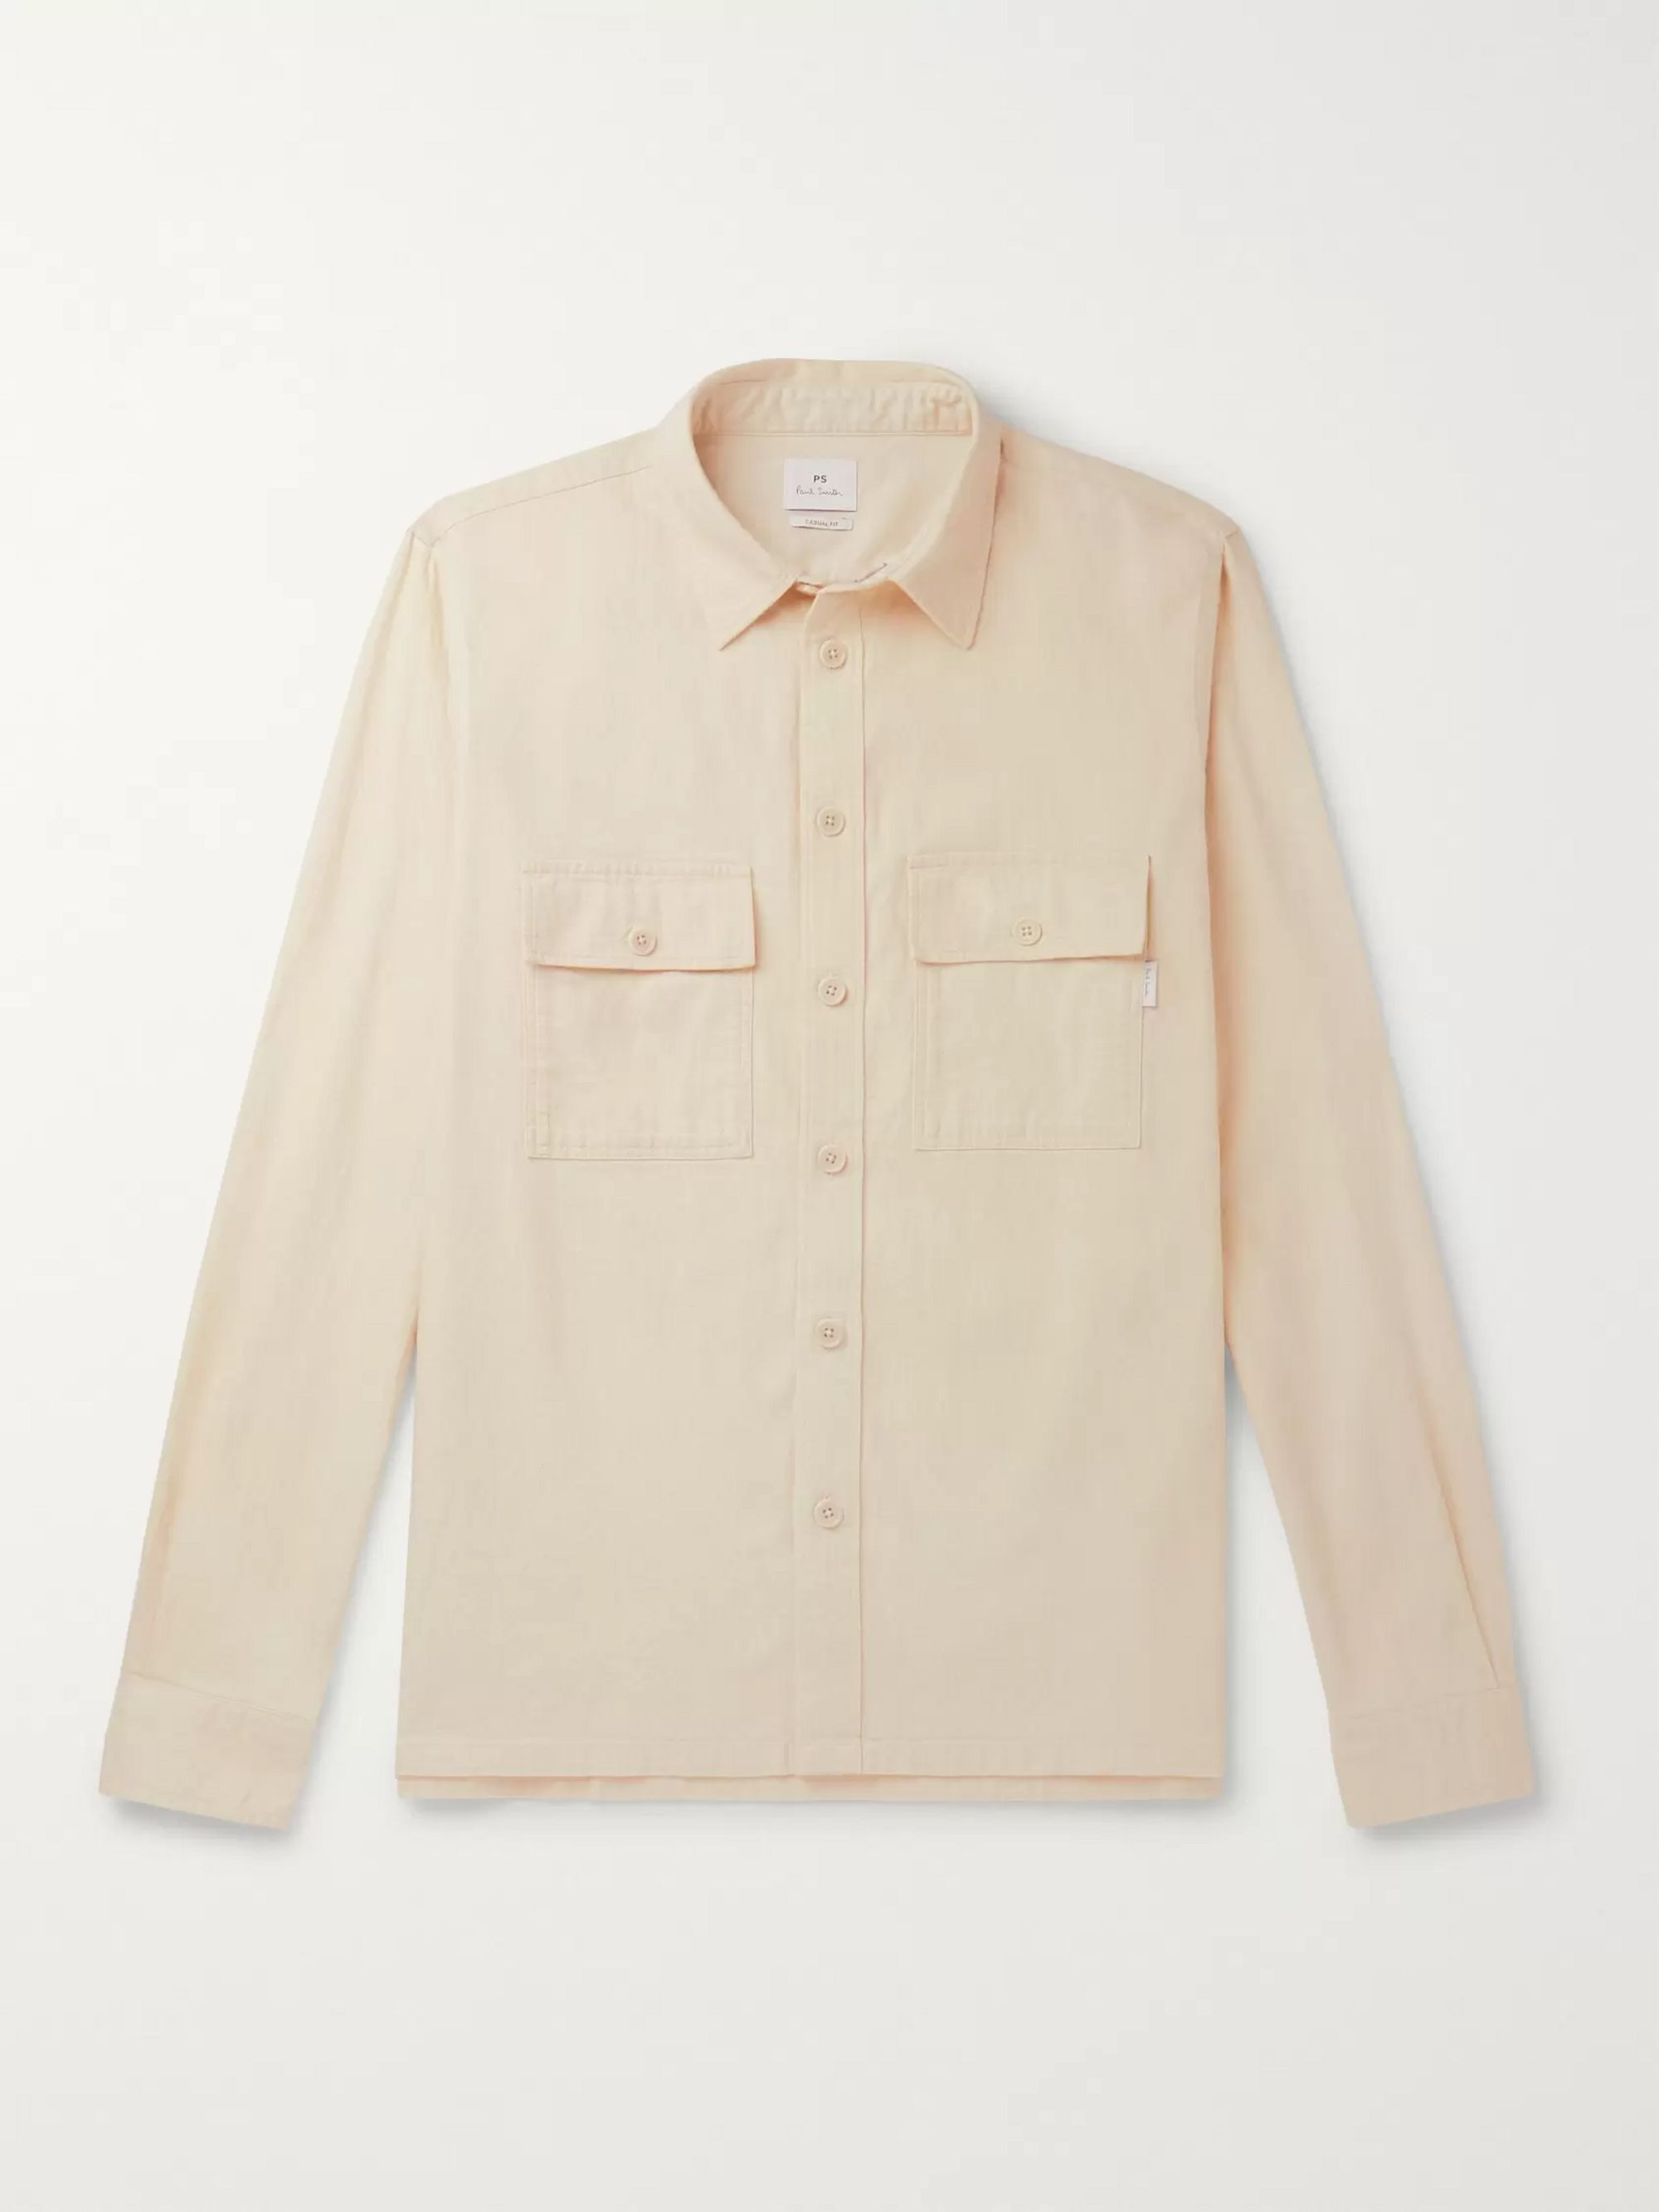 Cotton Blend Twill Overshirt by Ps Paul Smith